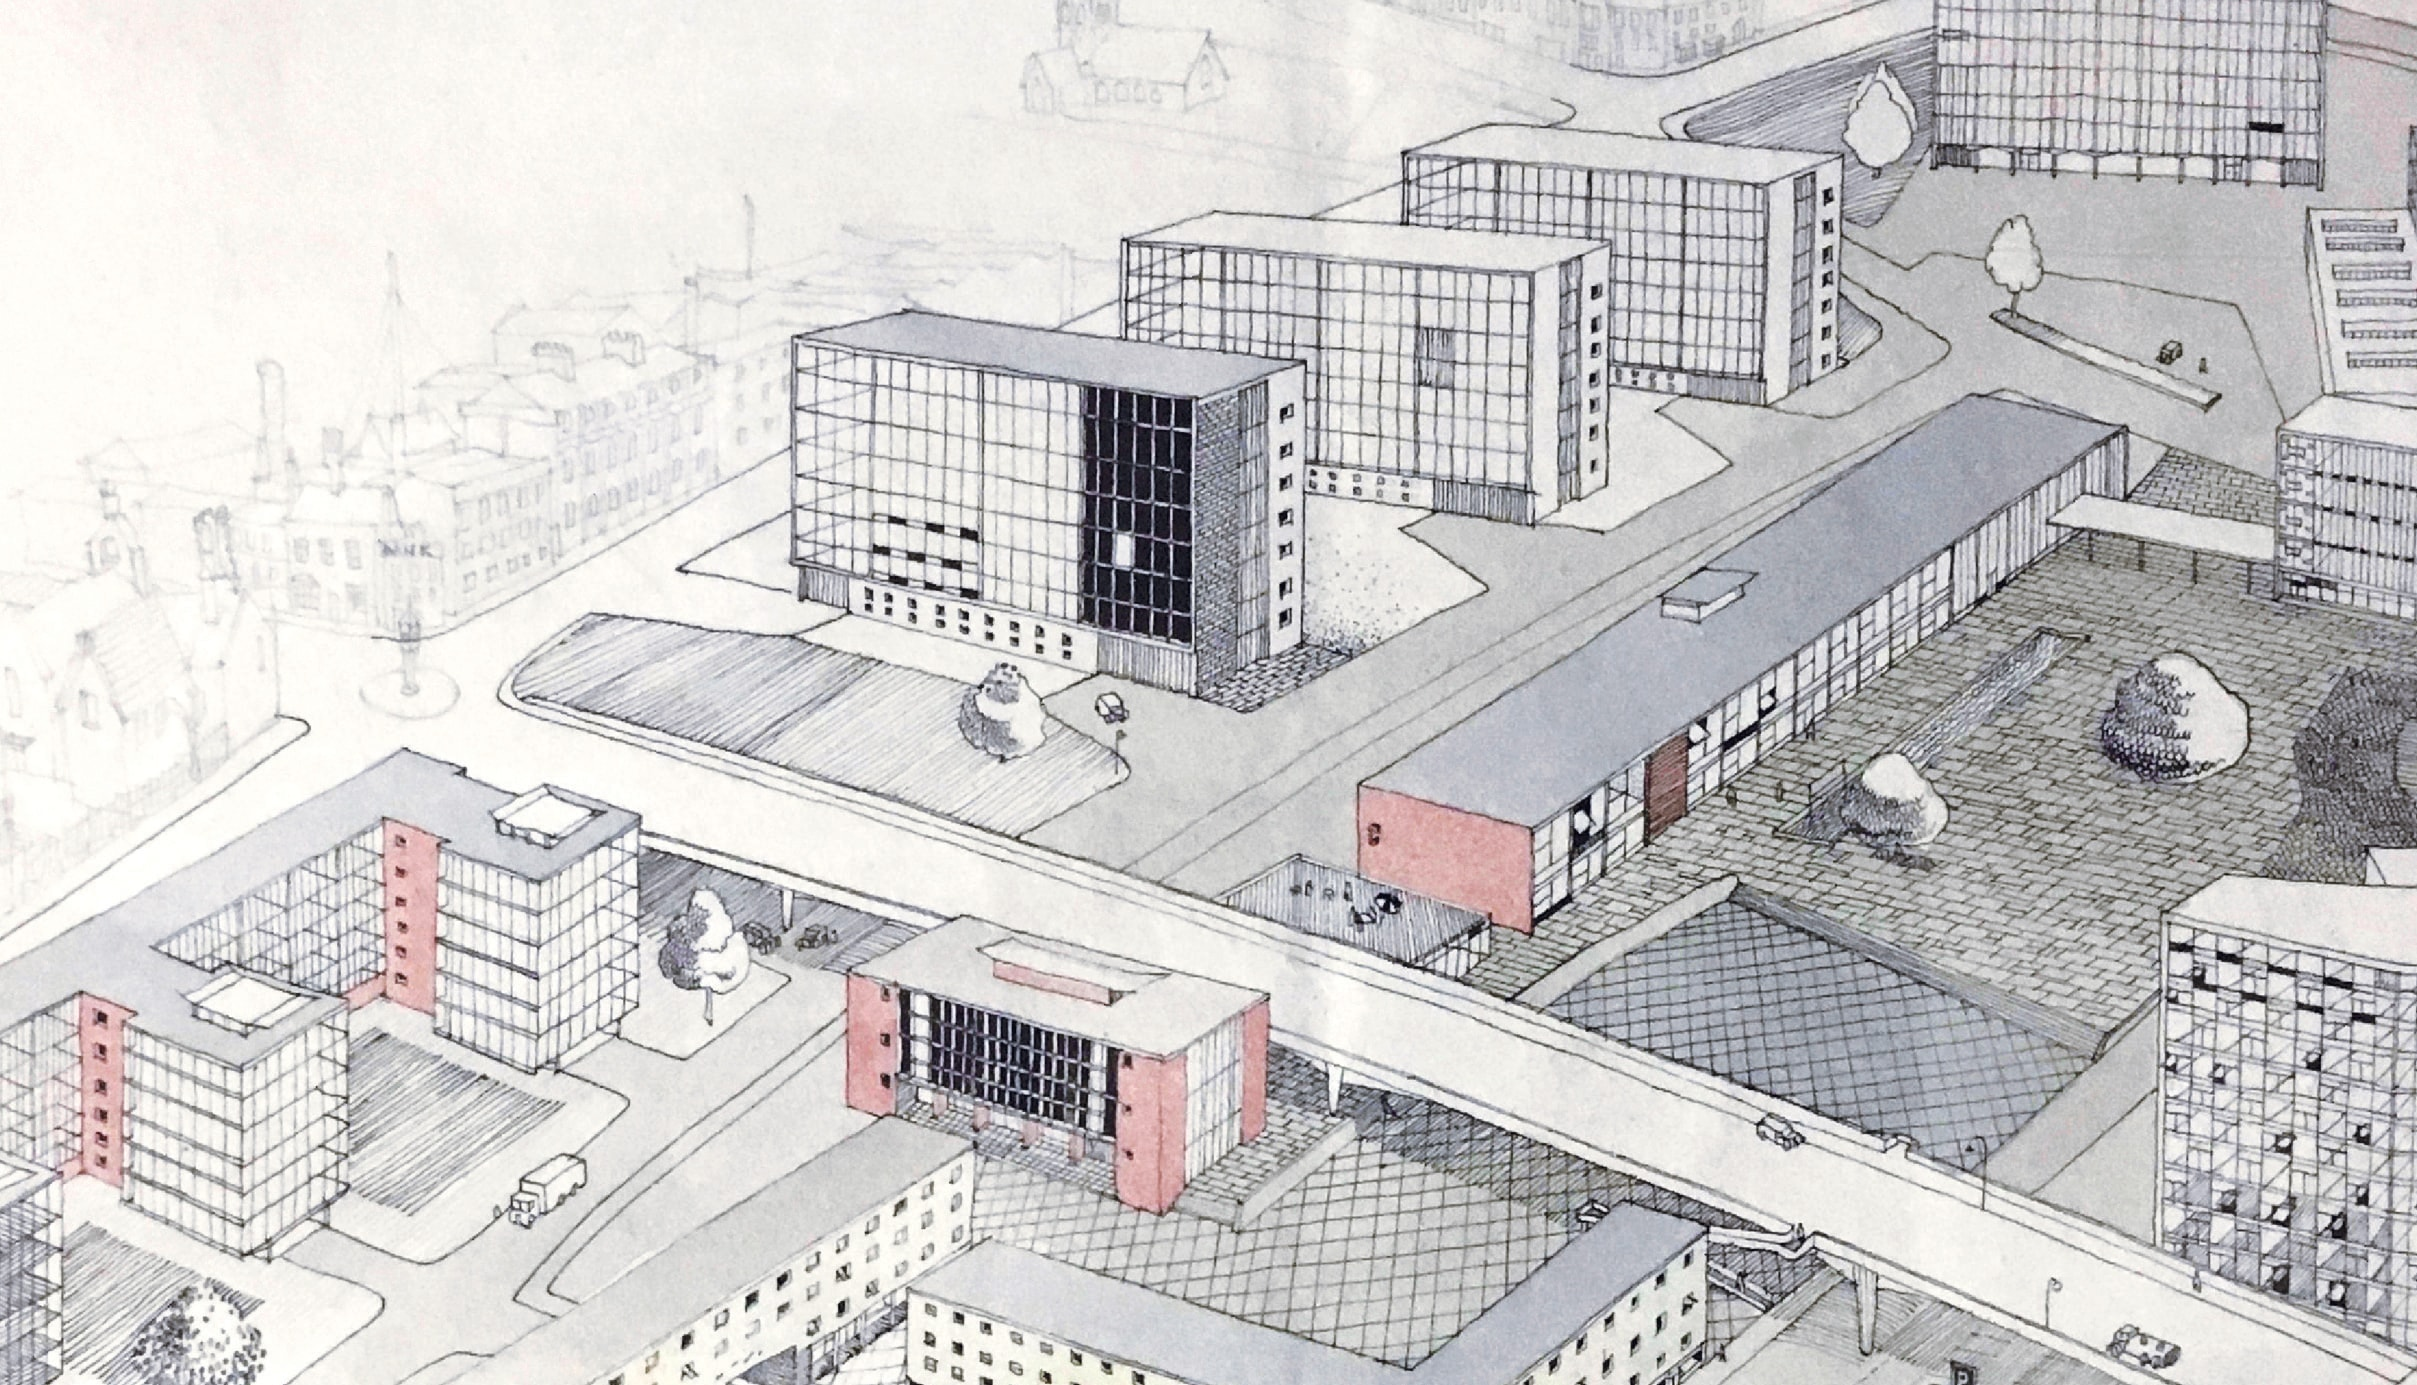 DRAWINGS REVEALED: Unique and original architectural drawings